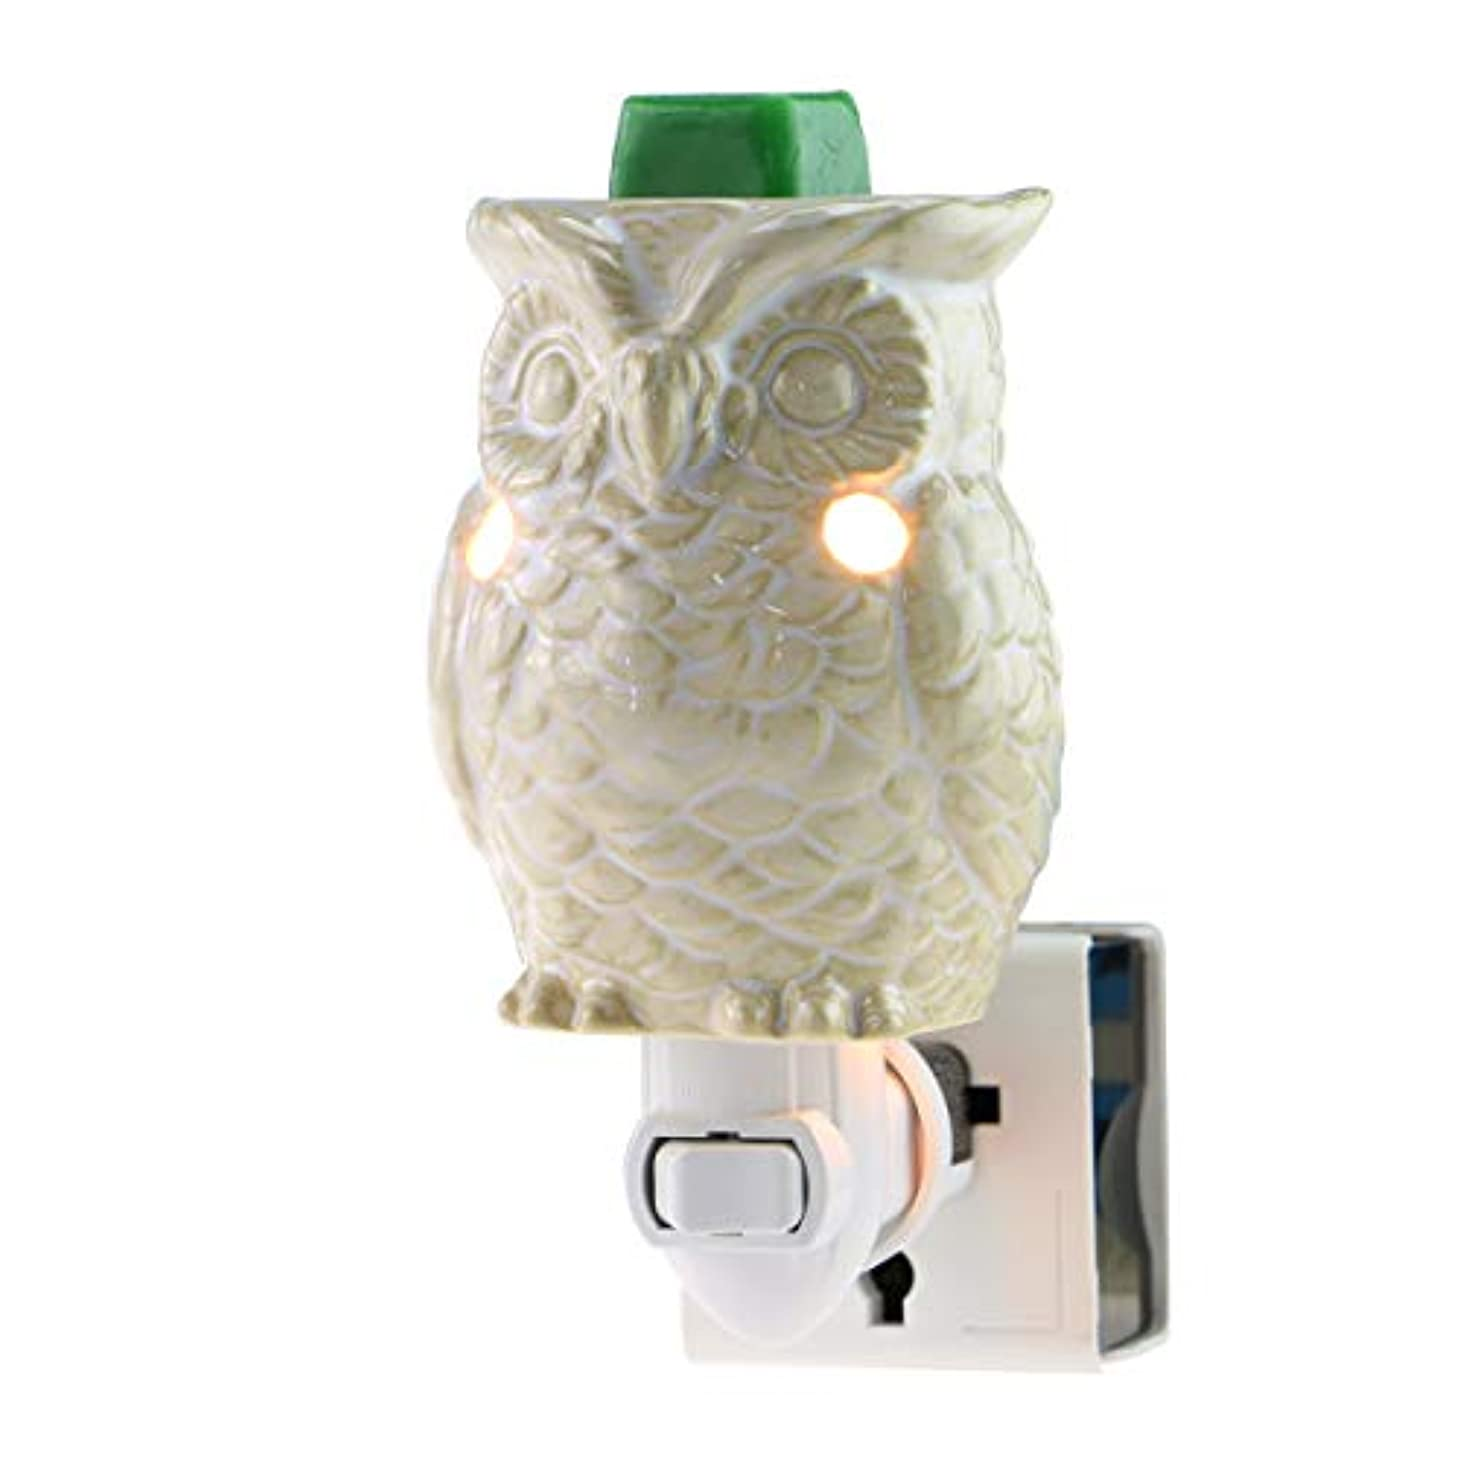 STAR MOON Plug in Wax Melt Warmer for Home Décor, Pluggable Home Fragrance Diffuser, 3D, No Flame, with One More Bulb (Owl of Athena)